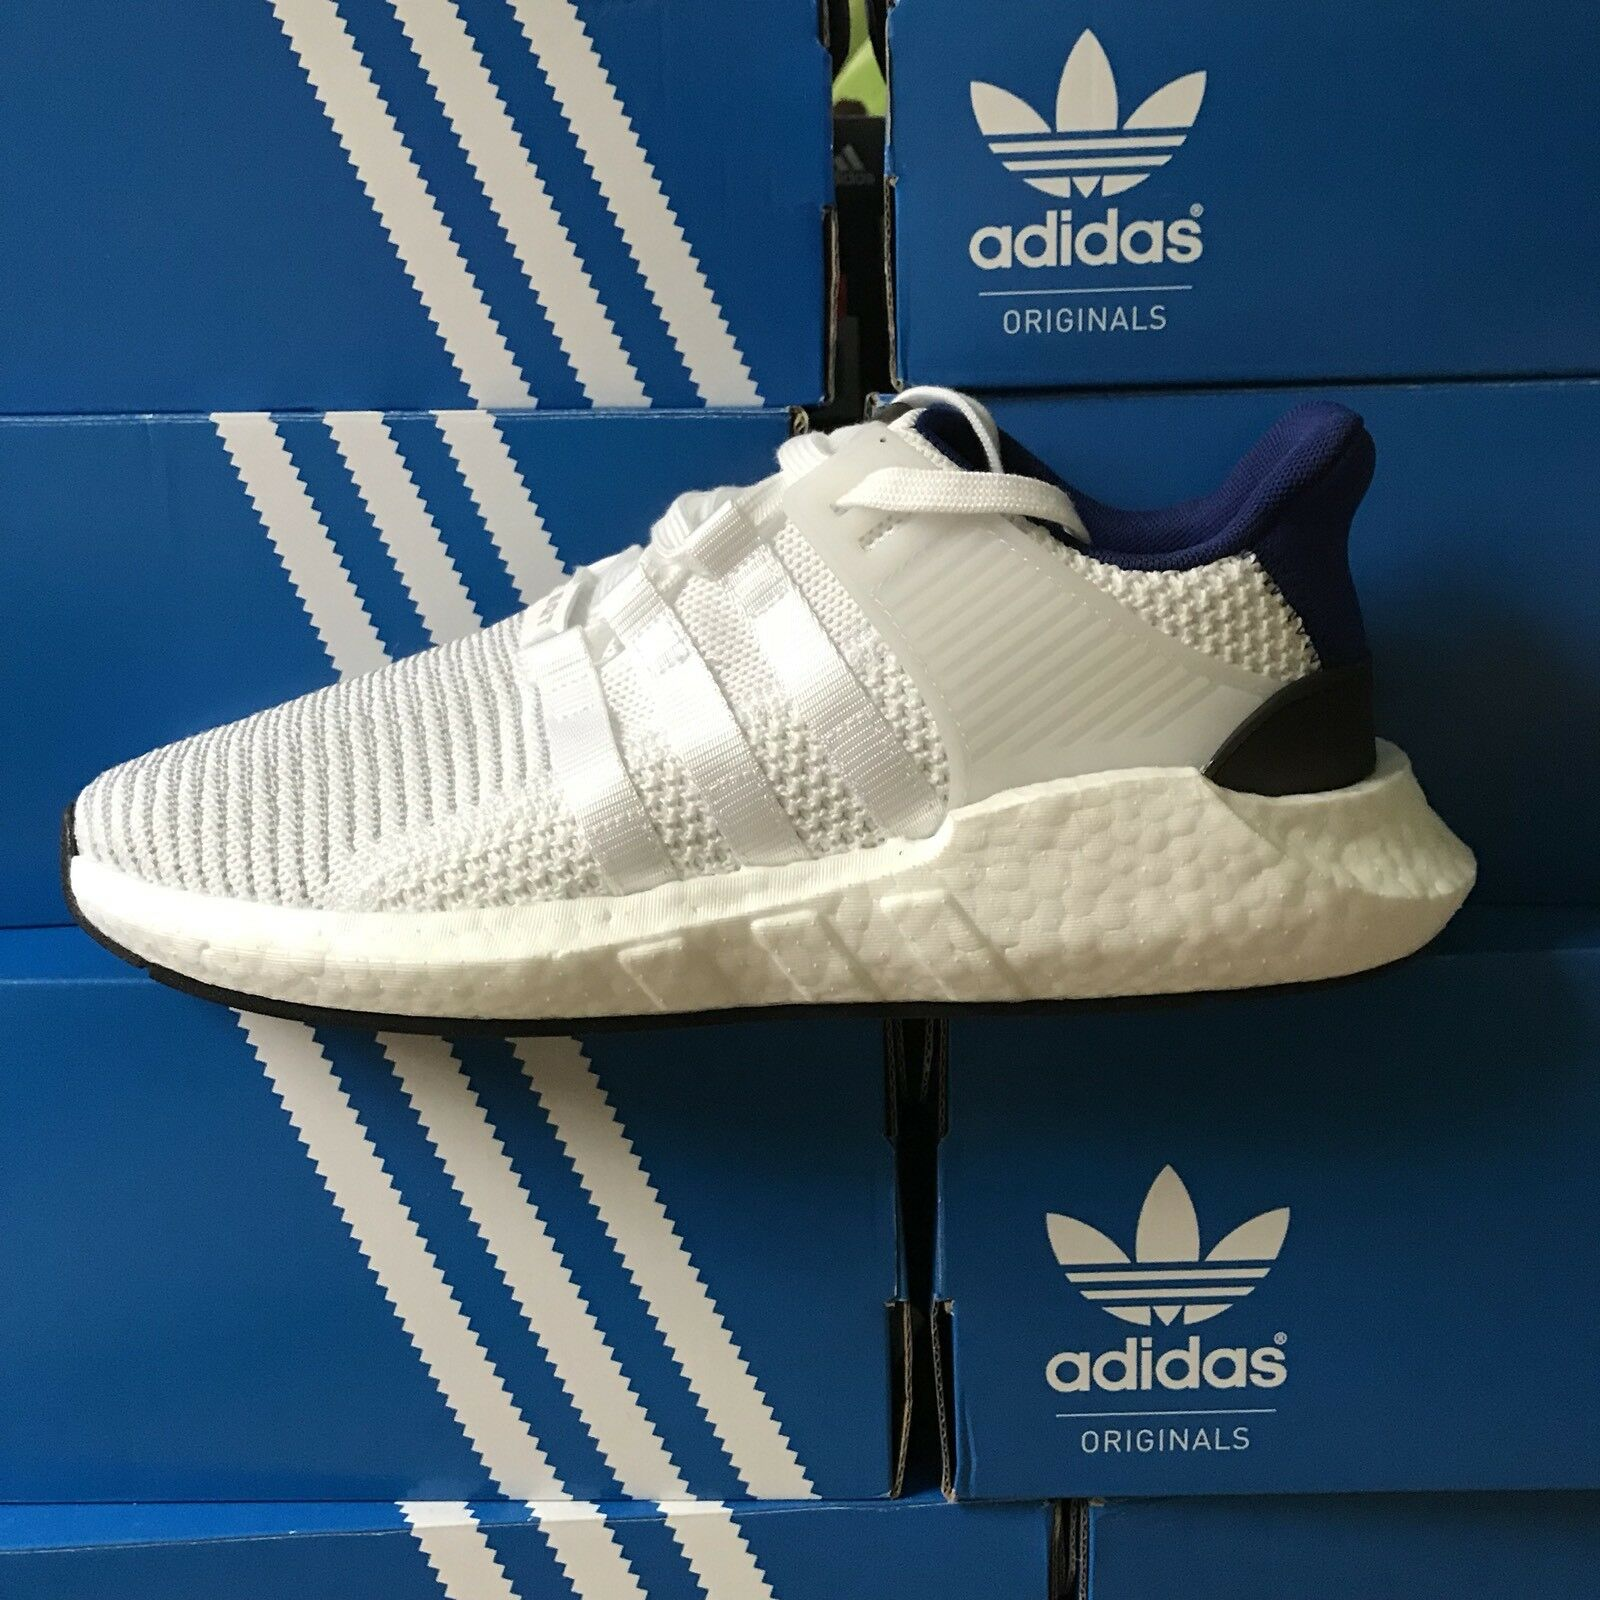 132346011 Adidas EQT Support 93 17 Boost Size Size Size 8 Royal Blue White Running  Shoes